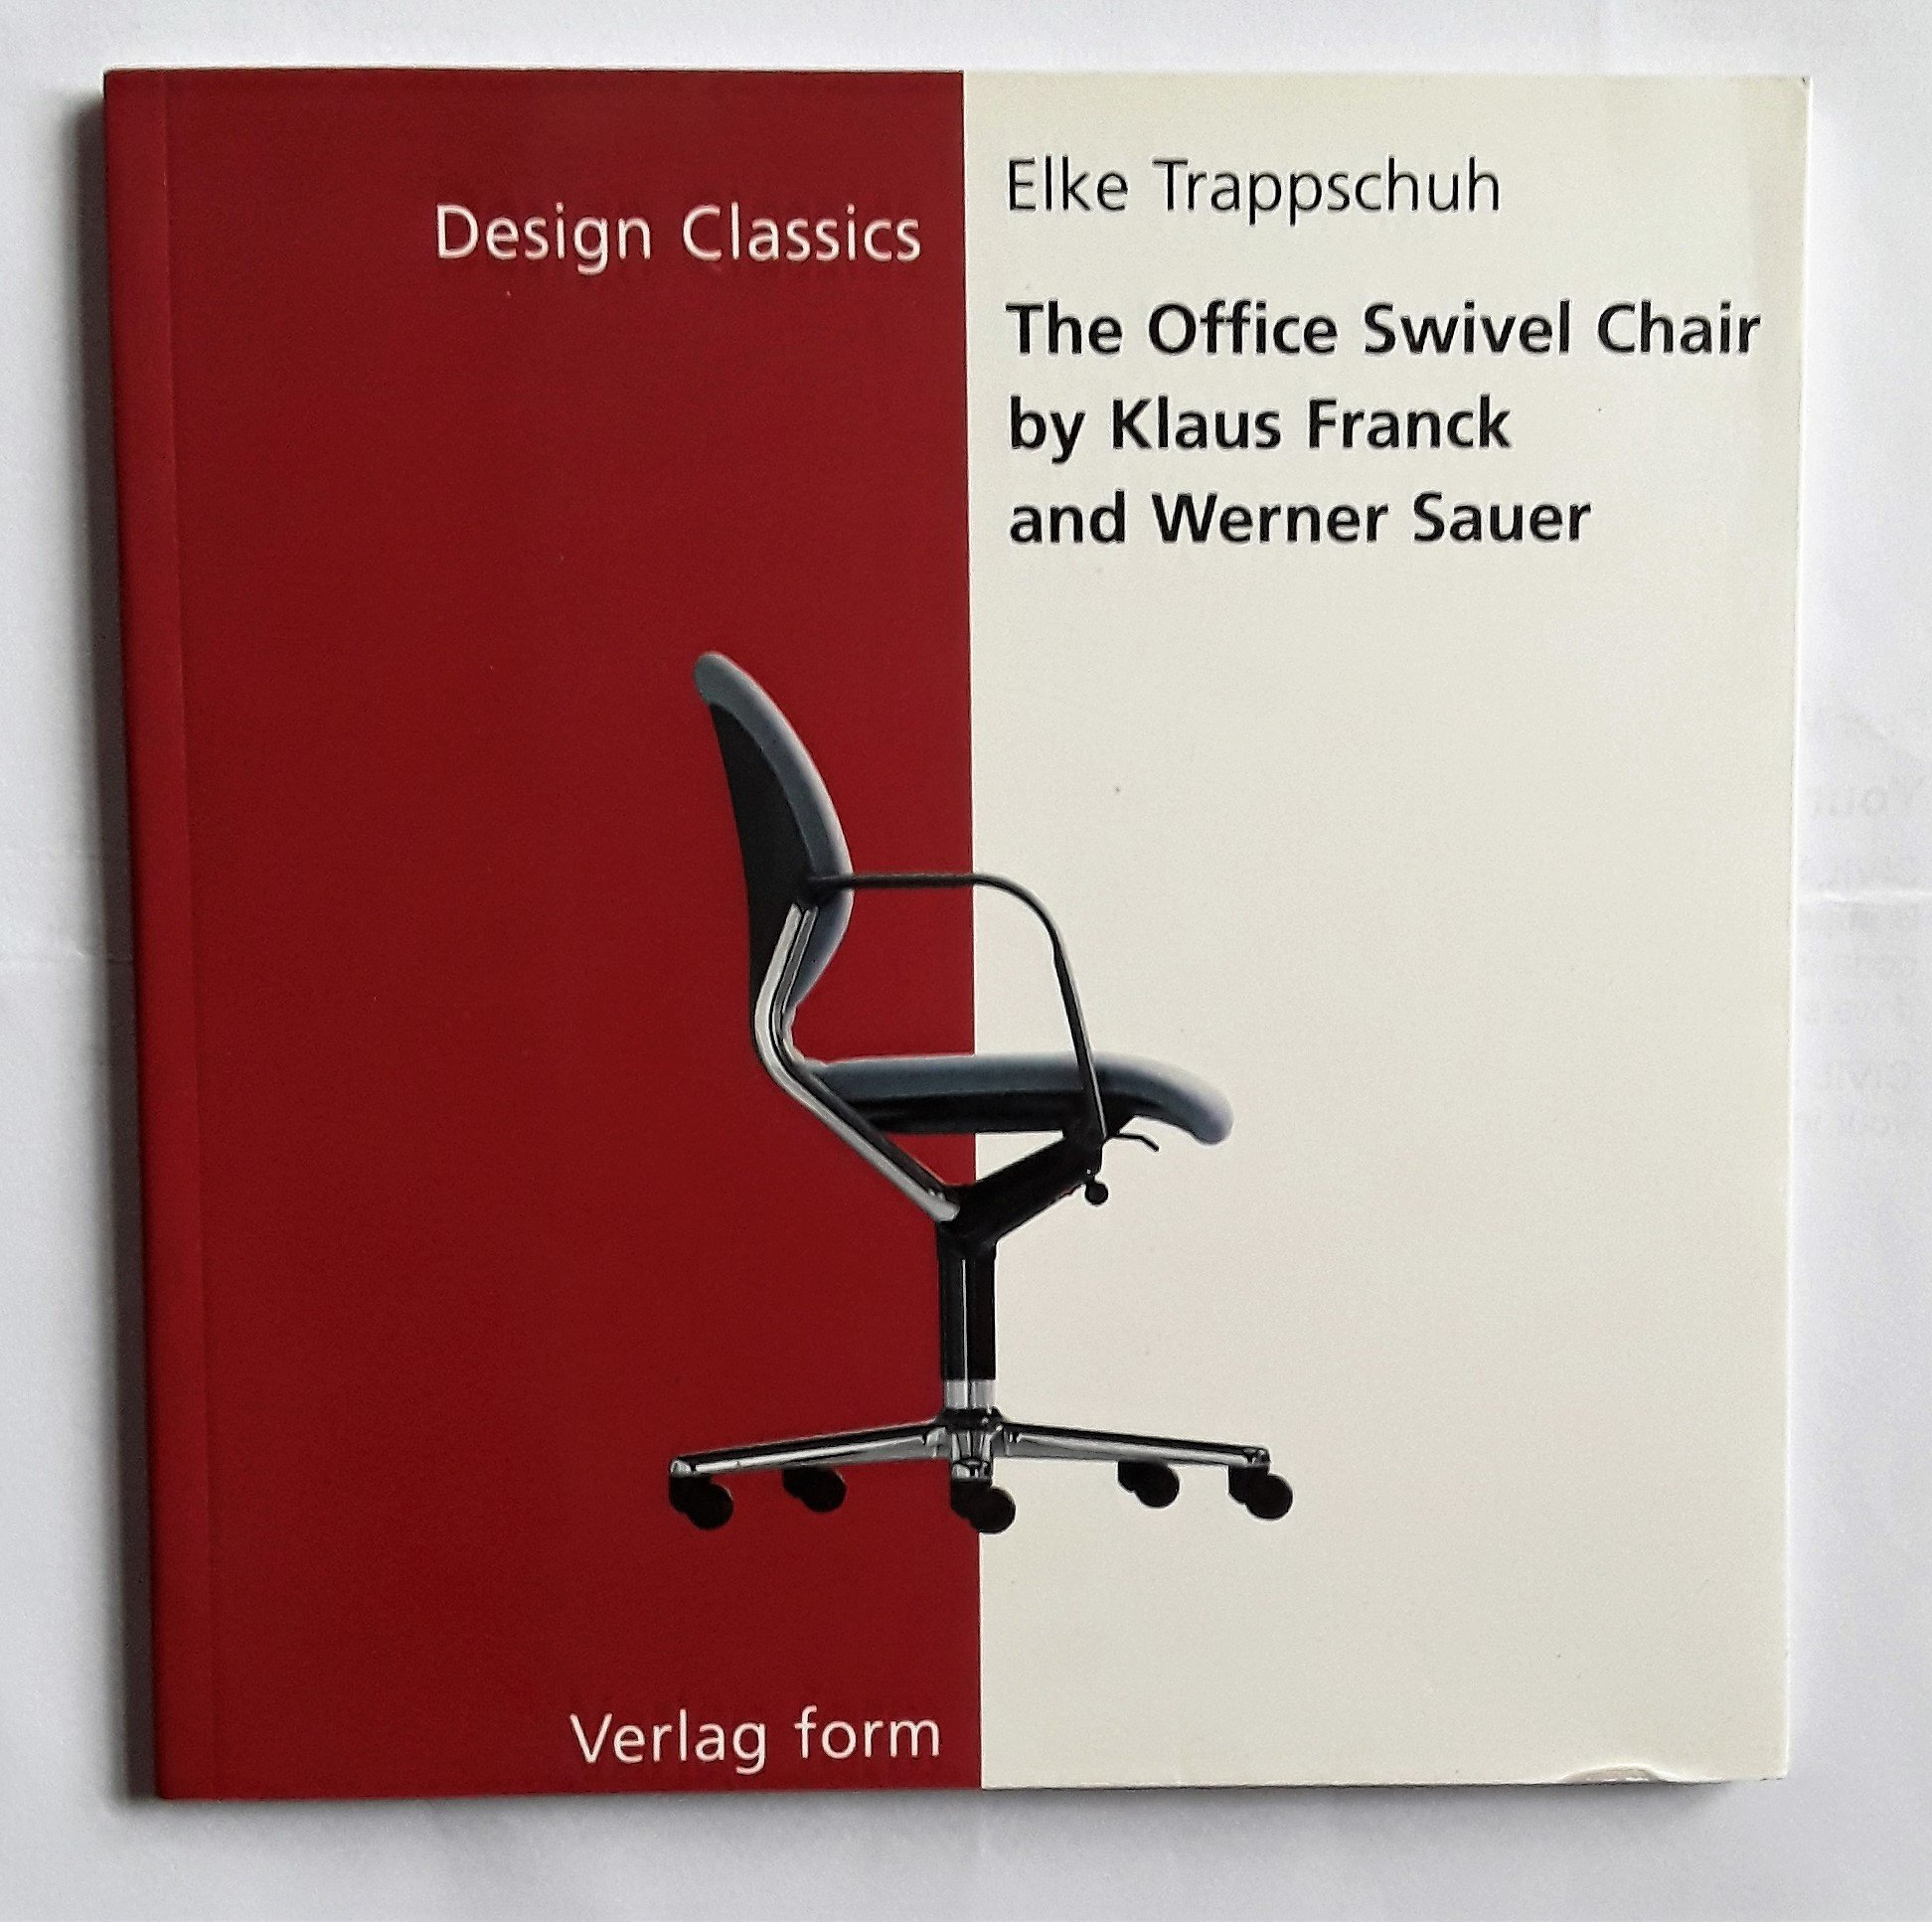 The Office Swivel Chair by Klaus Frank and Werner Sauer (Design Classics)